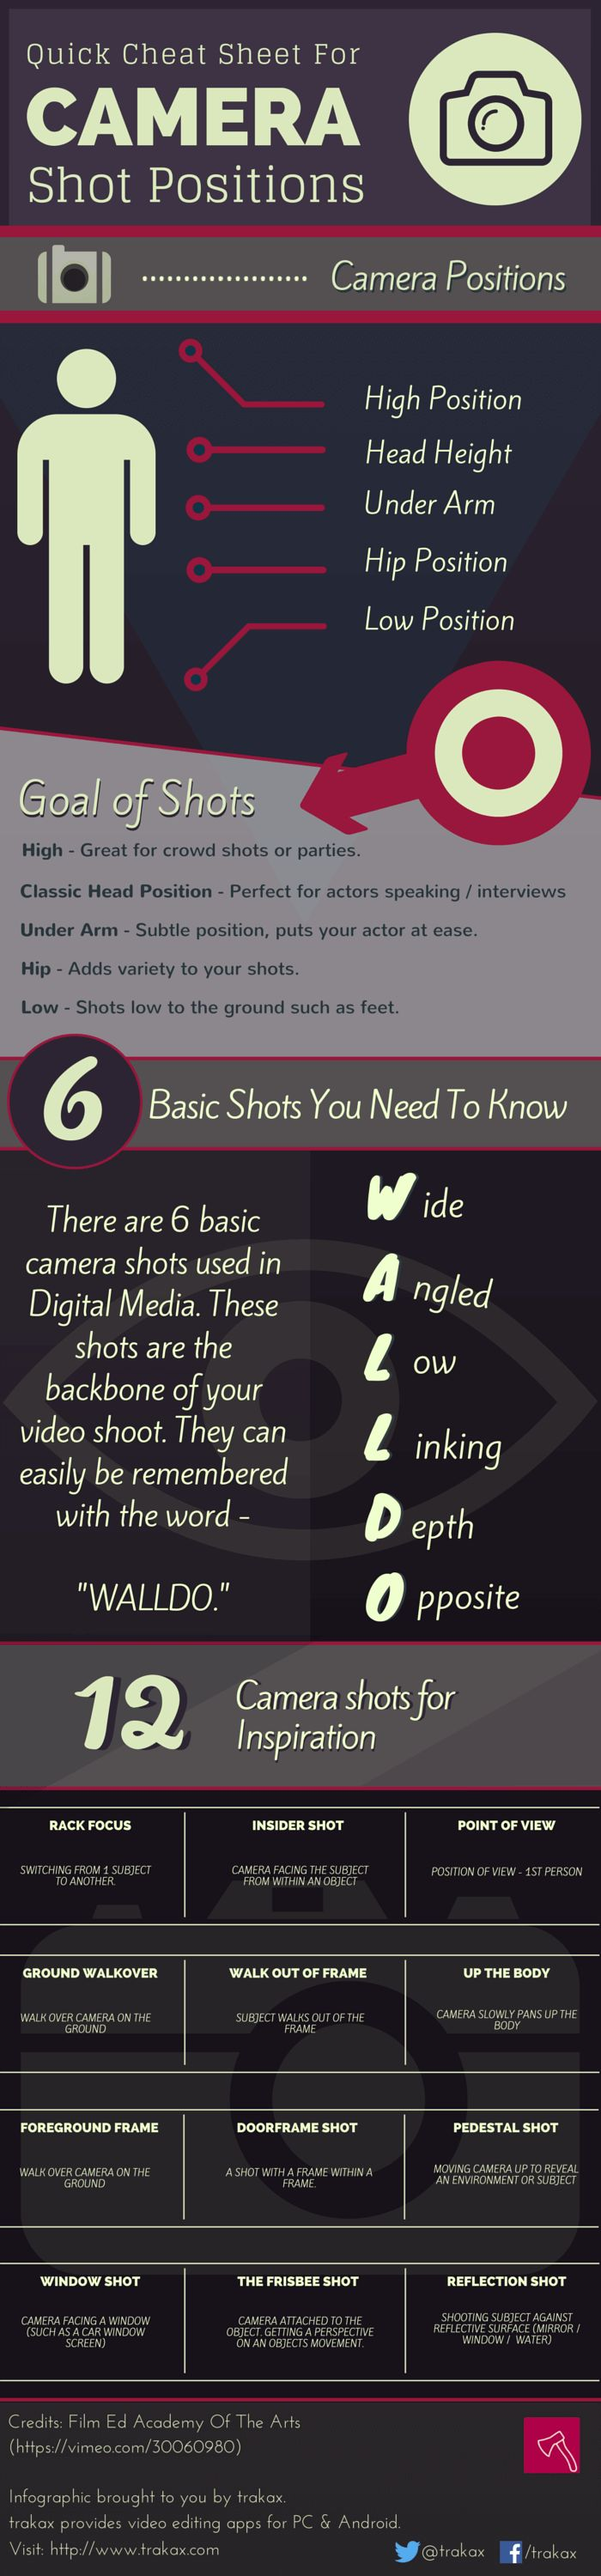 [Infograph] – Quick Cheat Sheet For Camera Shot Positions